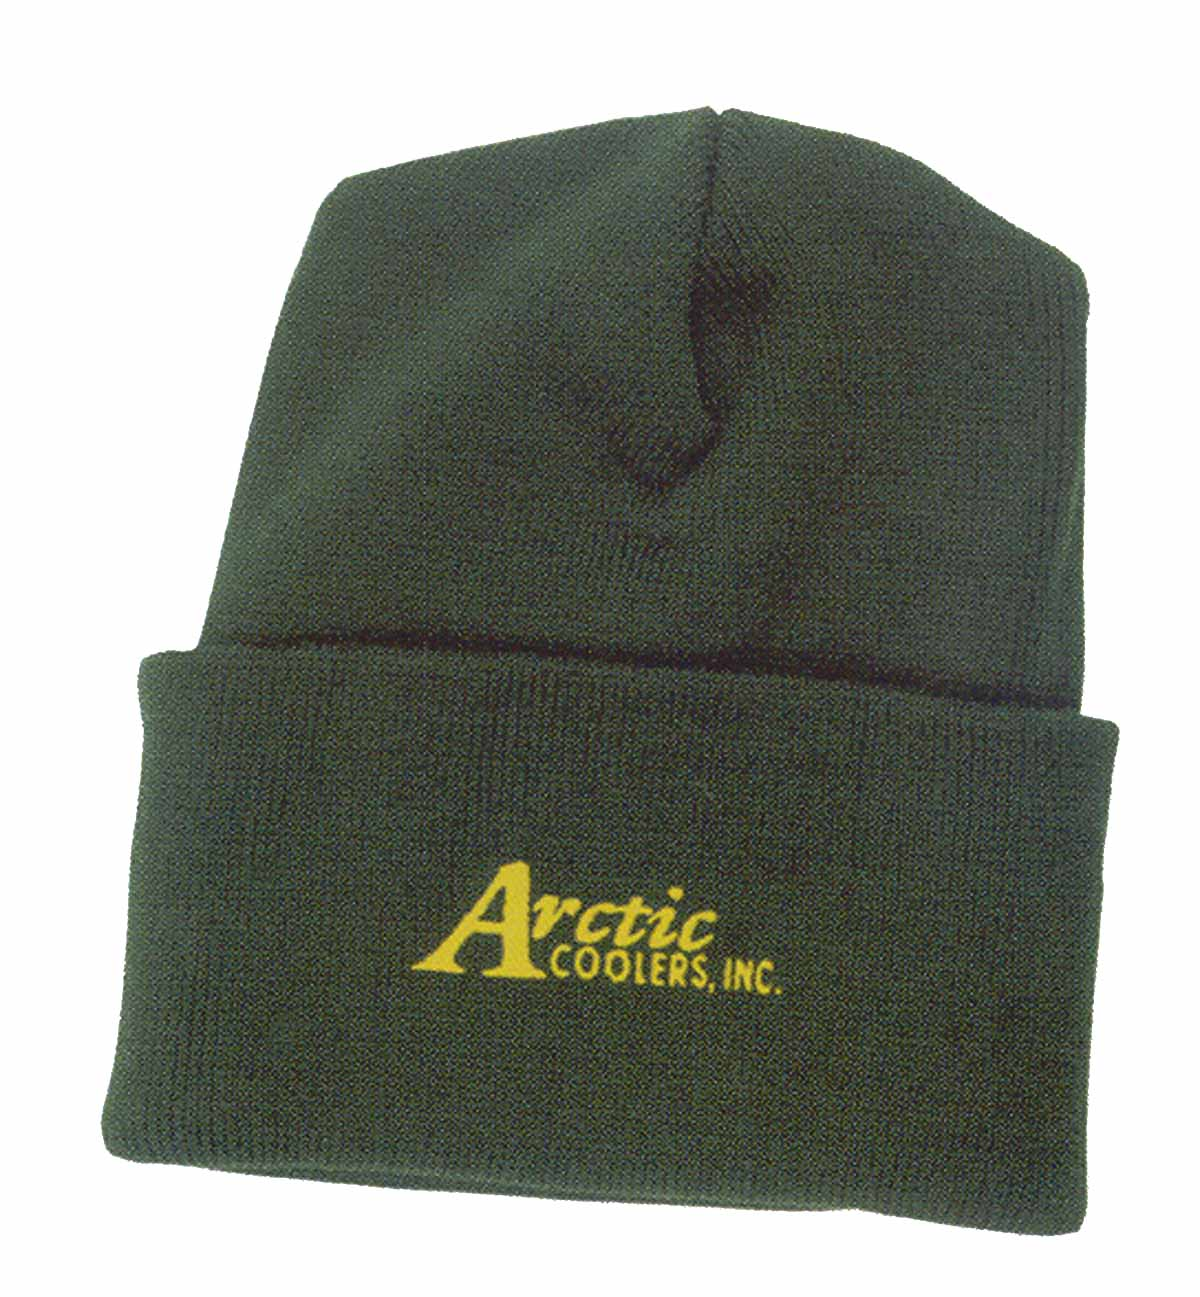 Picture of Acrylic Knit Hat, Promotional Logo Acrylic Knit Hat